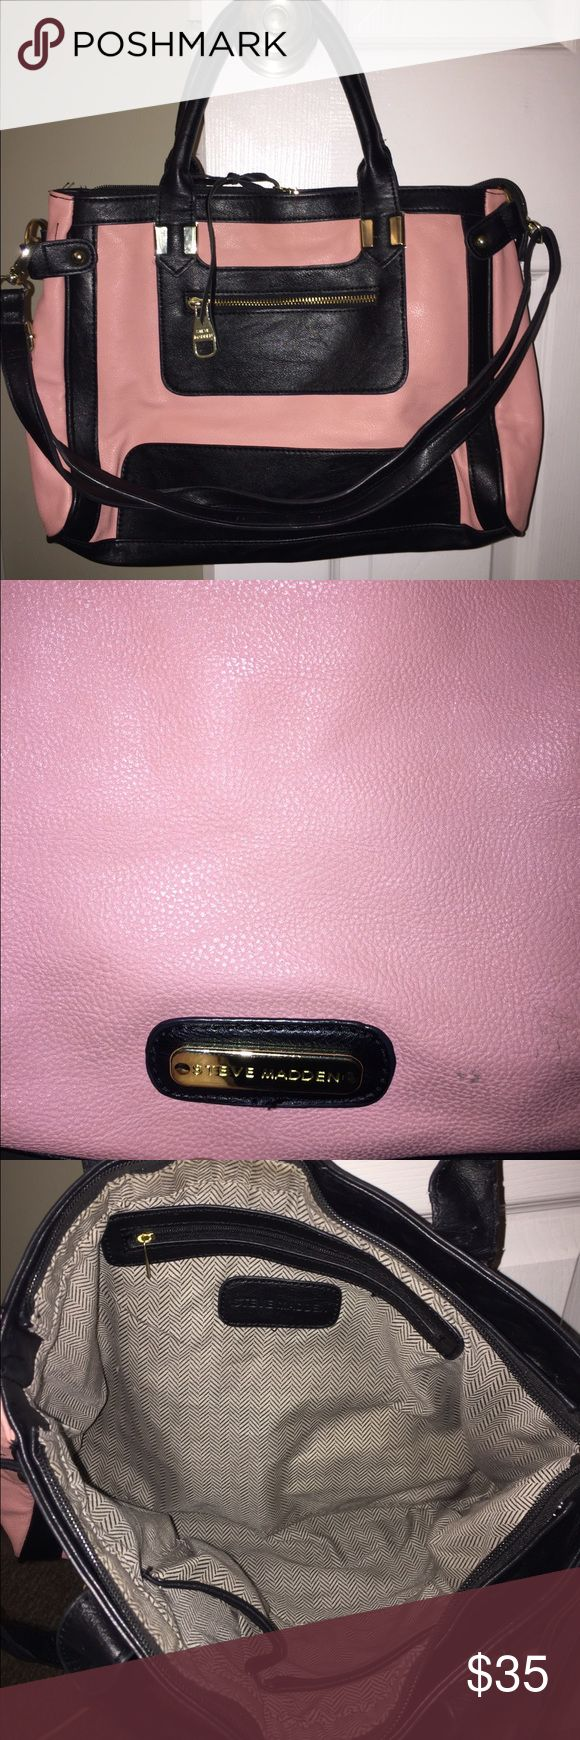 Medium sized Steve Madden bag Salmon colored mid sized Steve Madden bag. Zipper on the front is great for keeping your keys in or for putting makeup. Good sized bag. I used it for work and would carry an iPad and binders in it. Still has a lot of life left. Handles do show some wear to them. See last 3 pictures. Steve Madden Bags